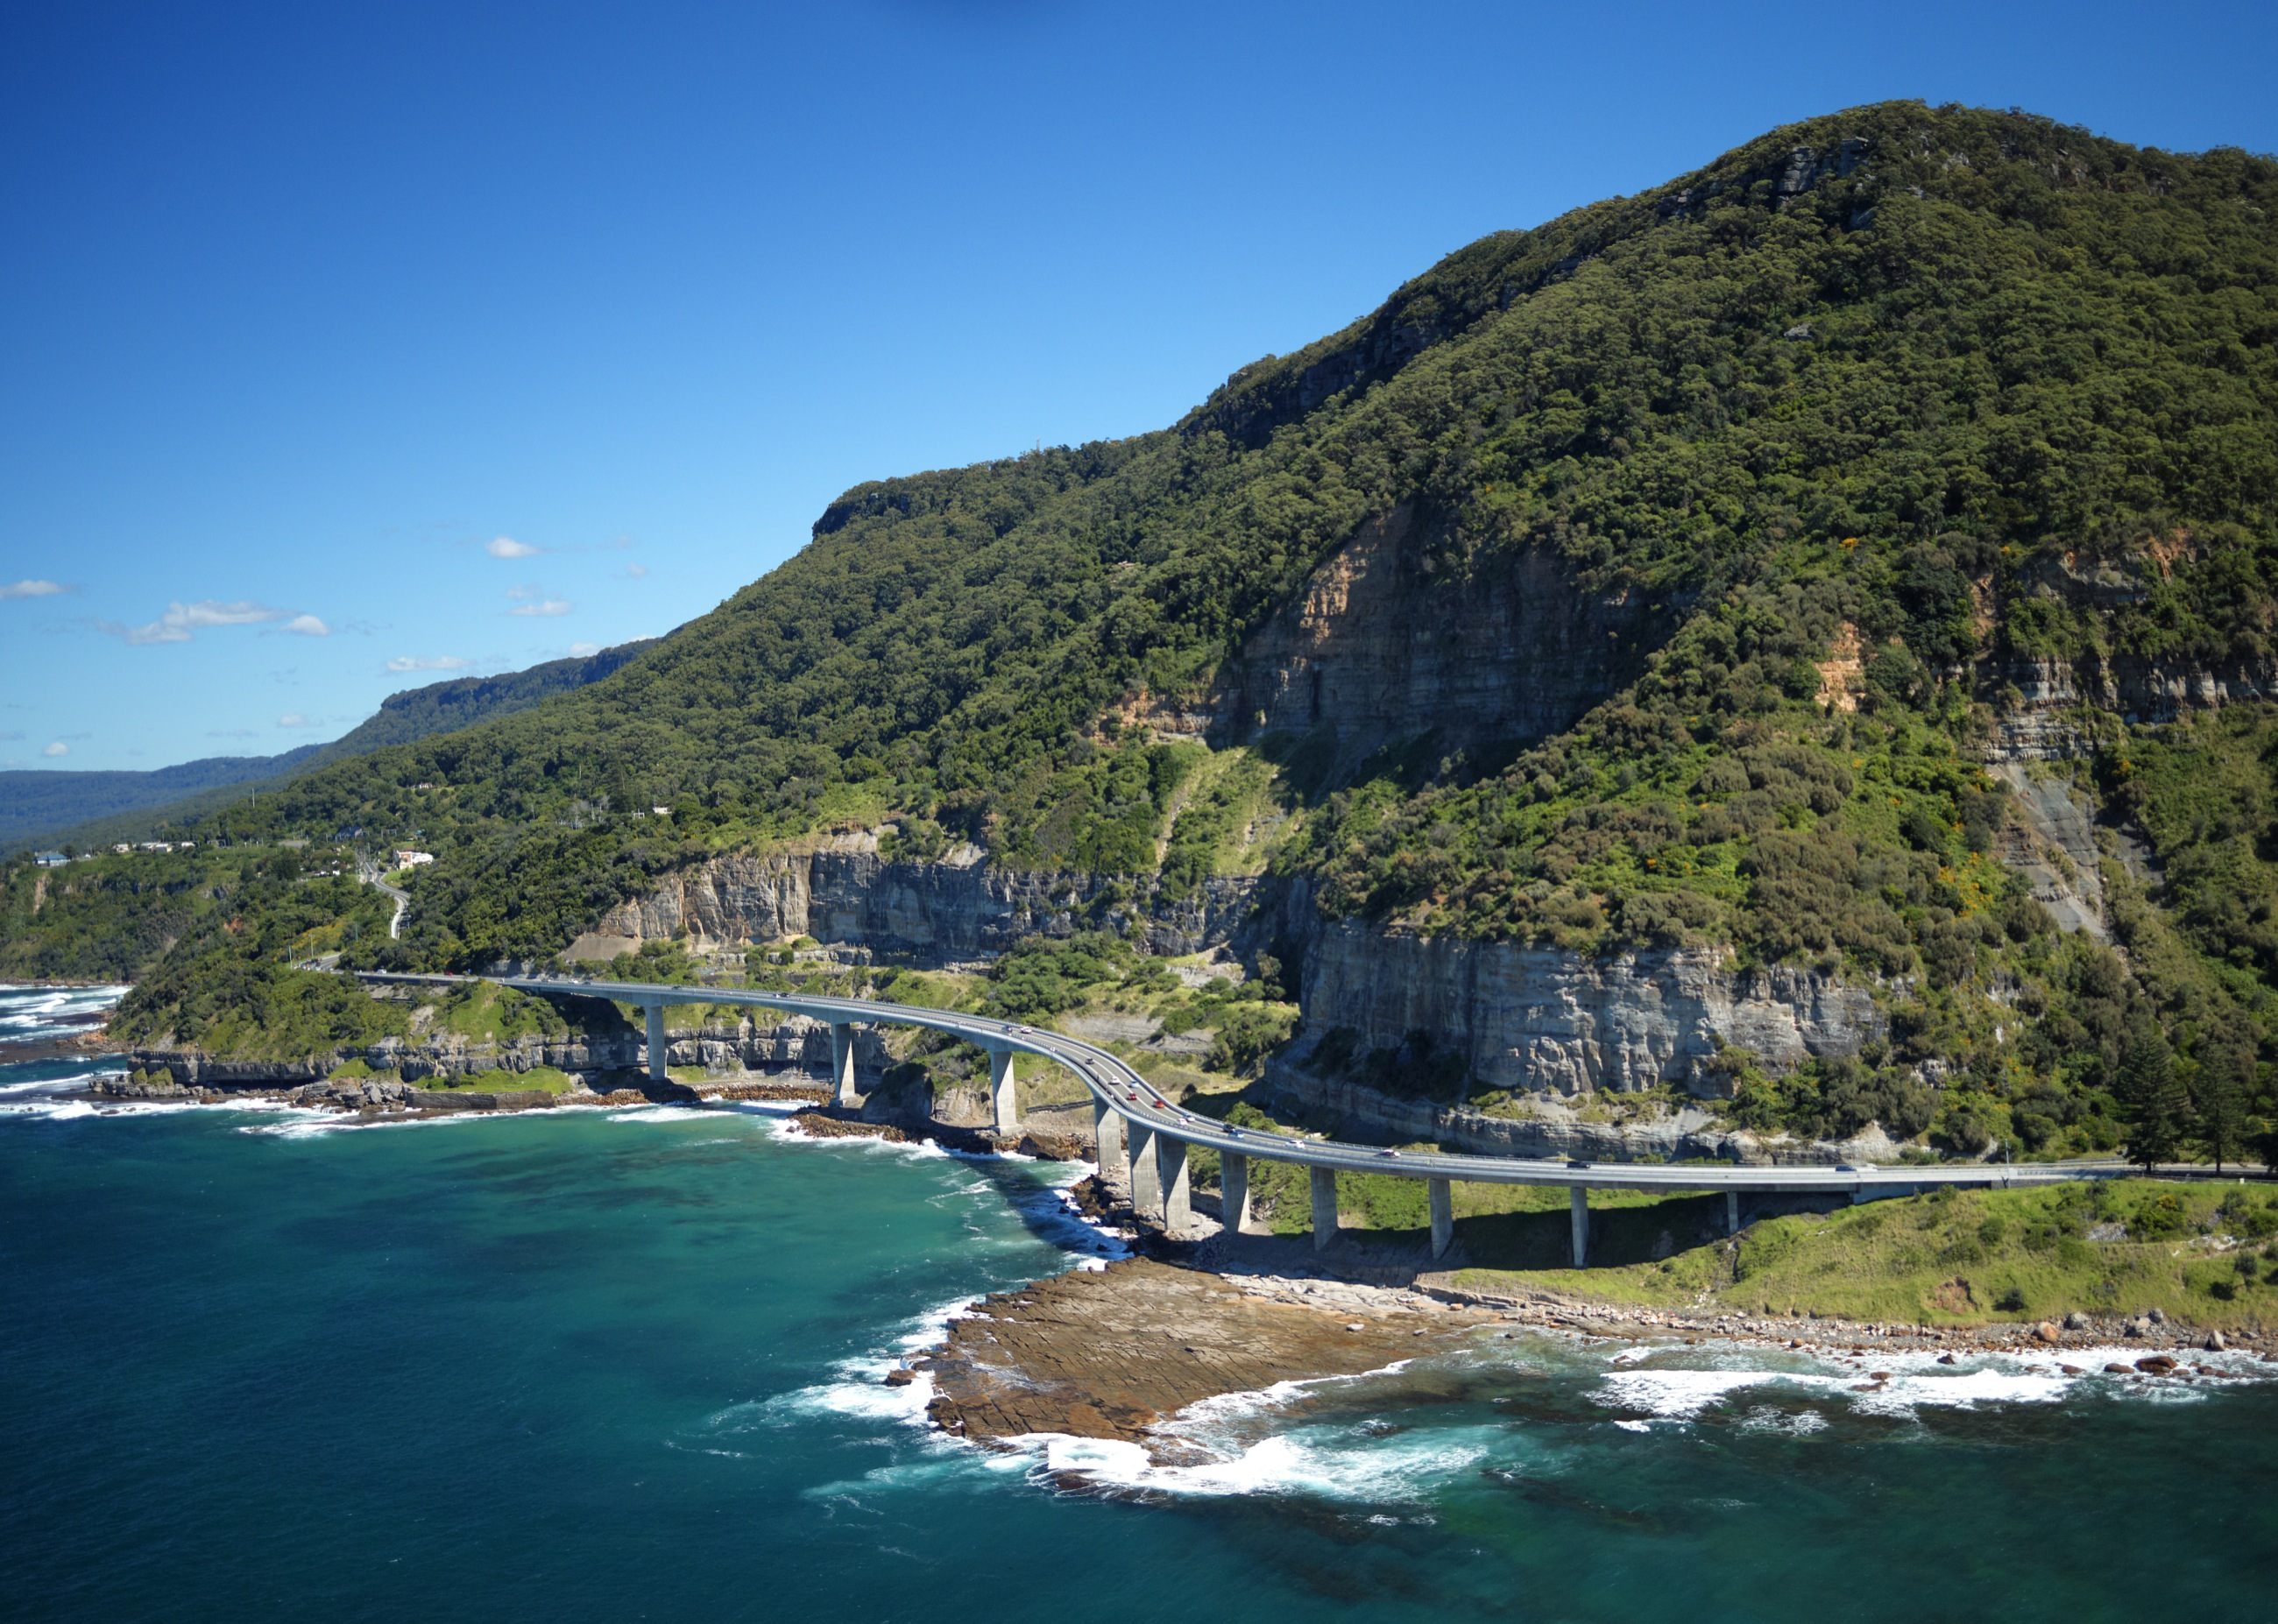 An aerial photograph of Seacliff Bridge